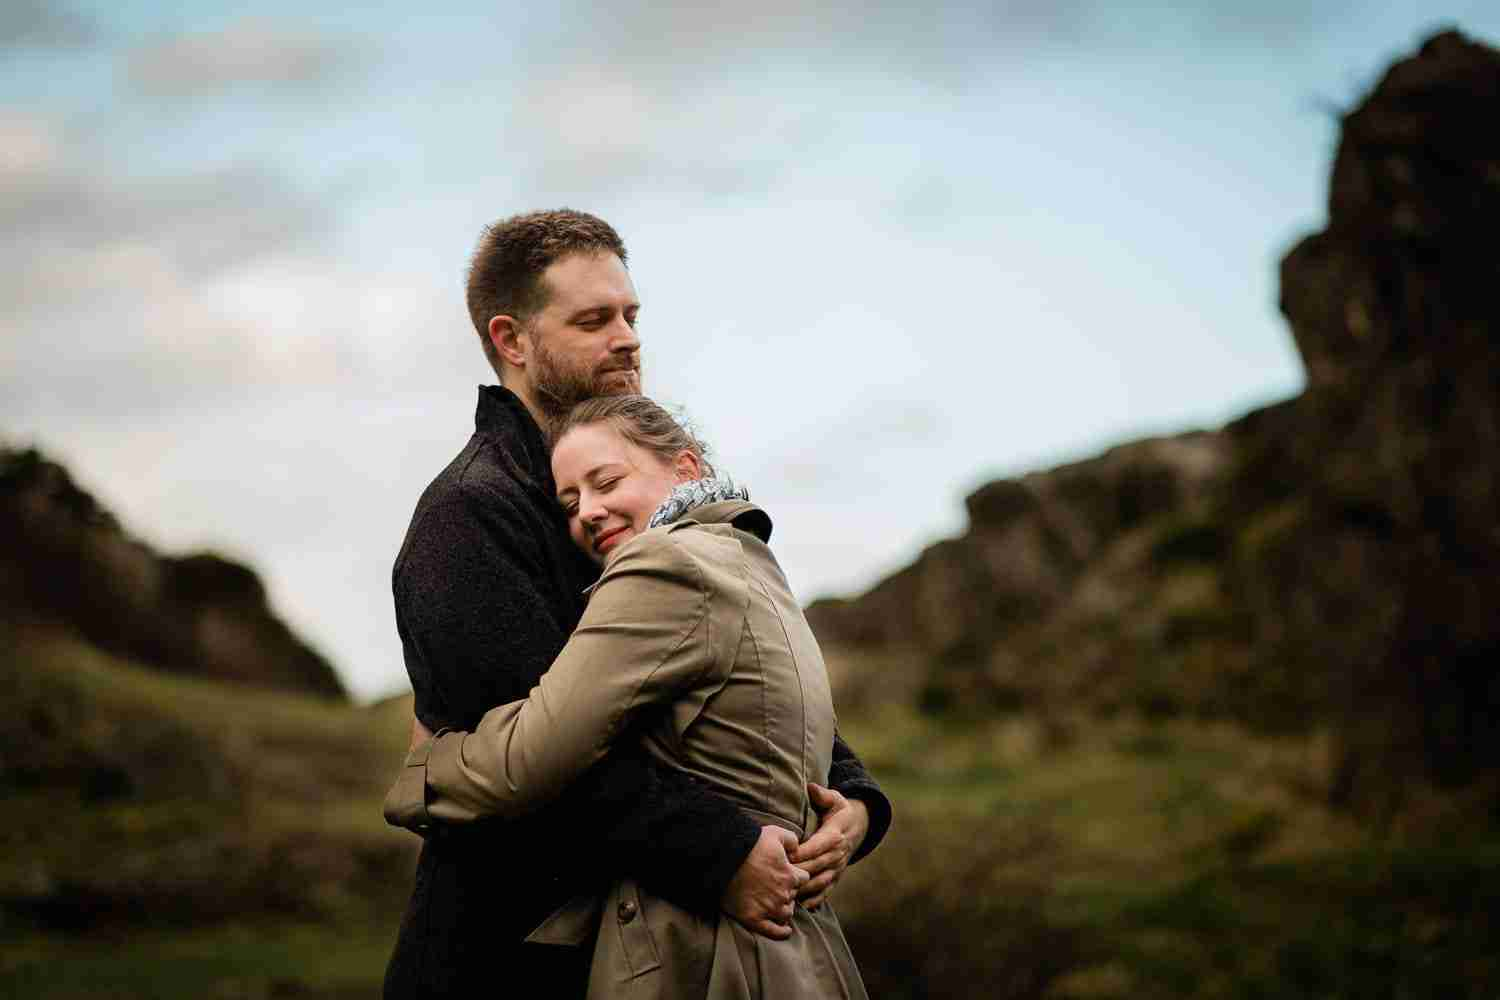 an engagement portrait at Blackford quarry, Edinburgh